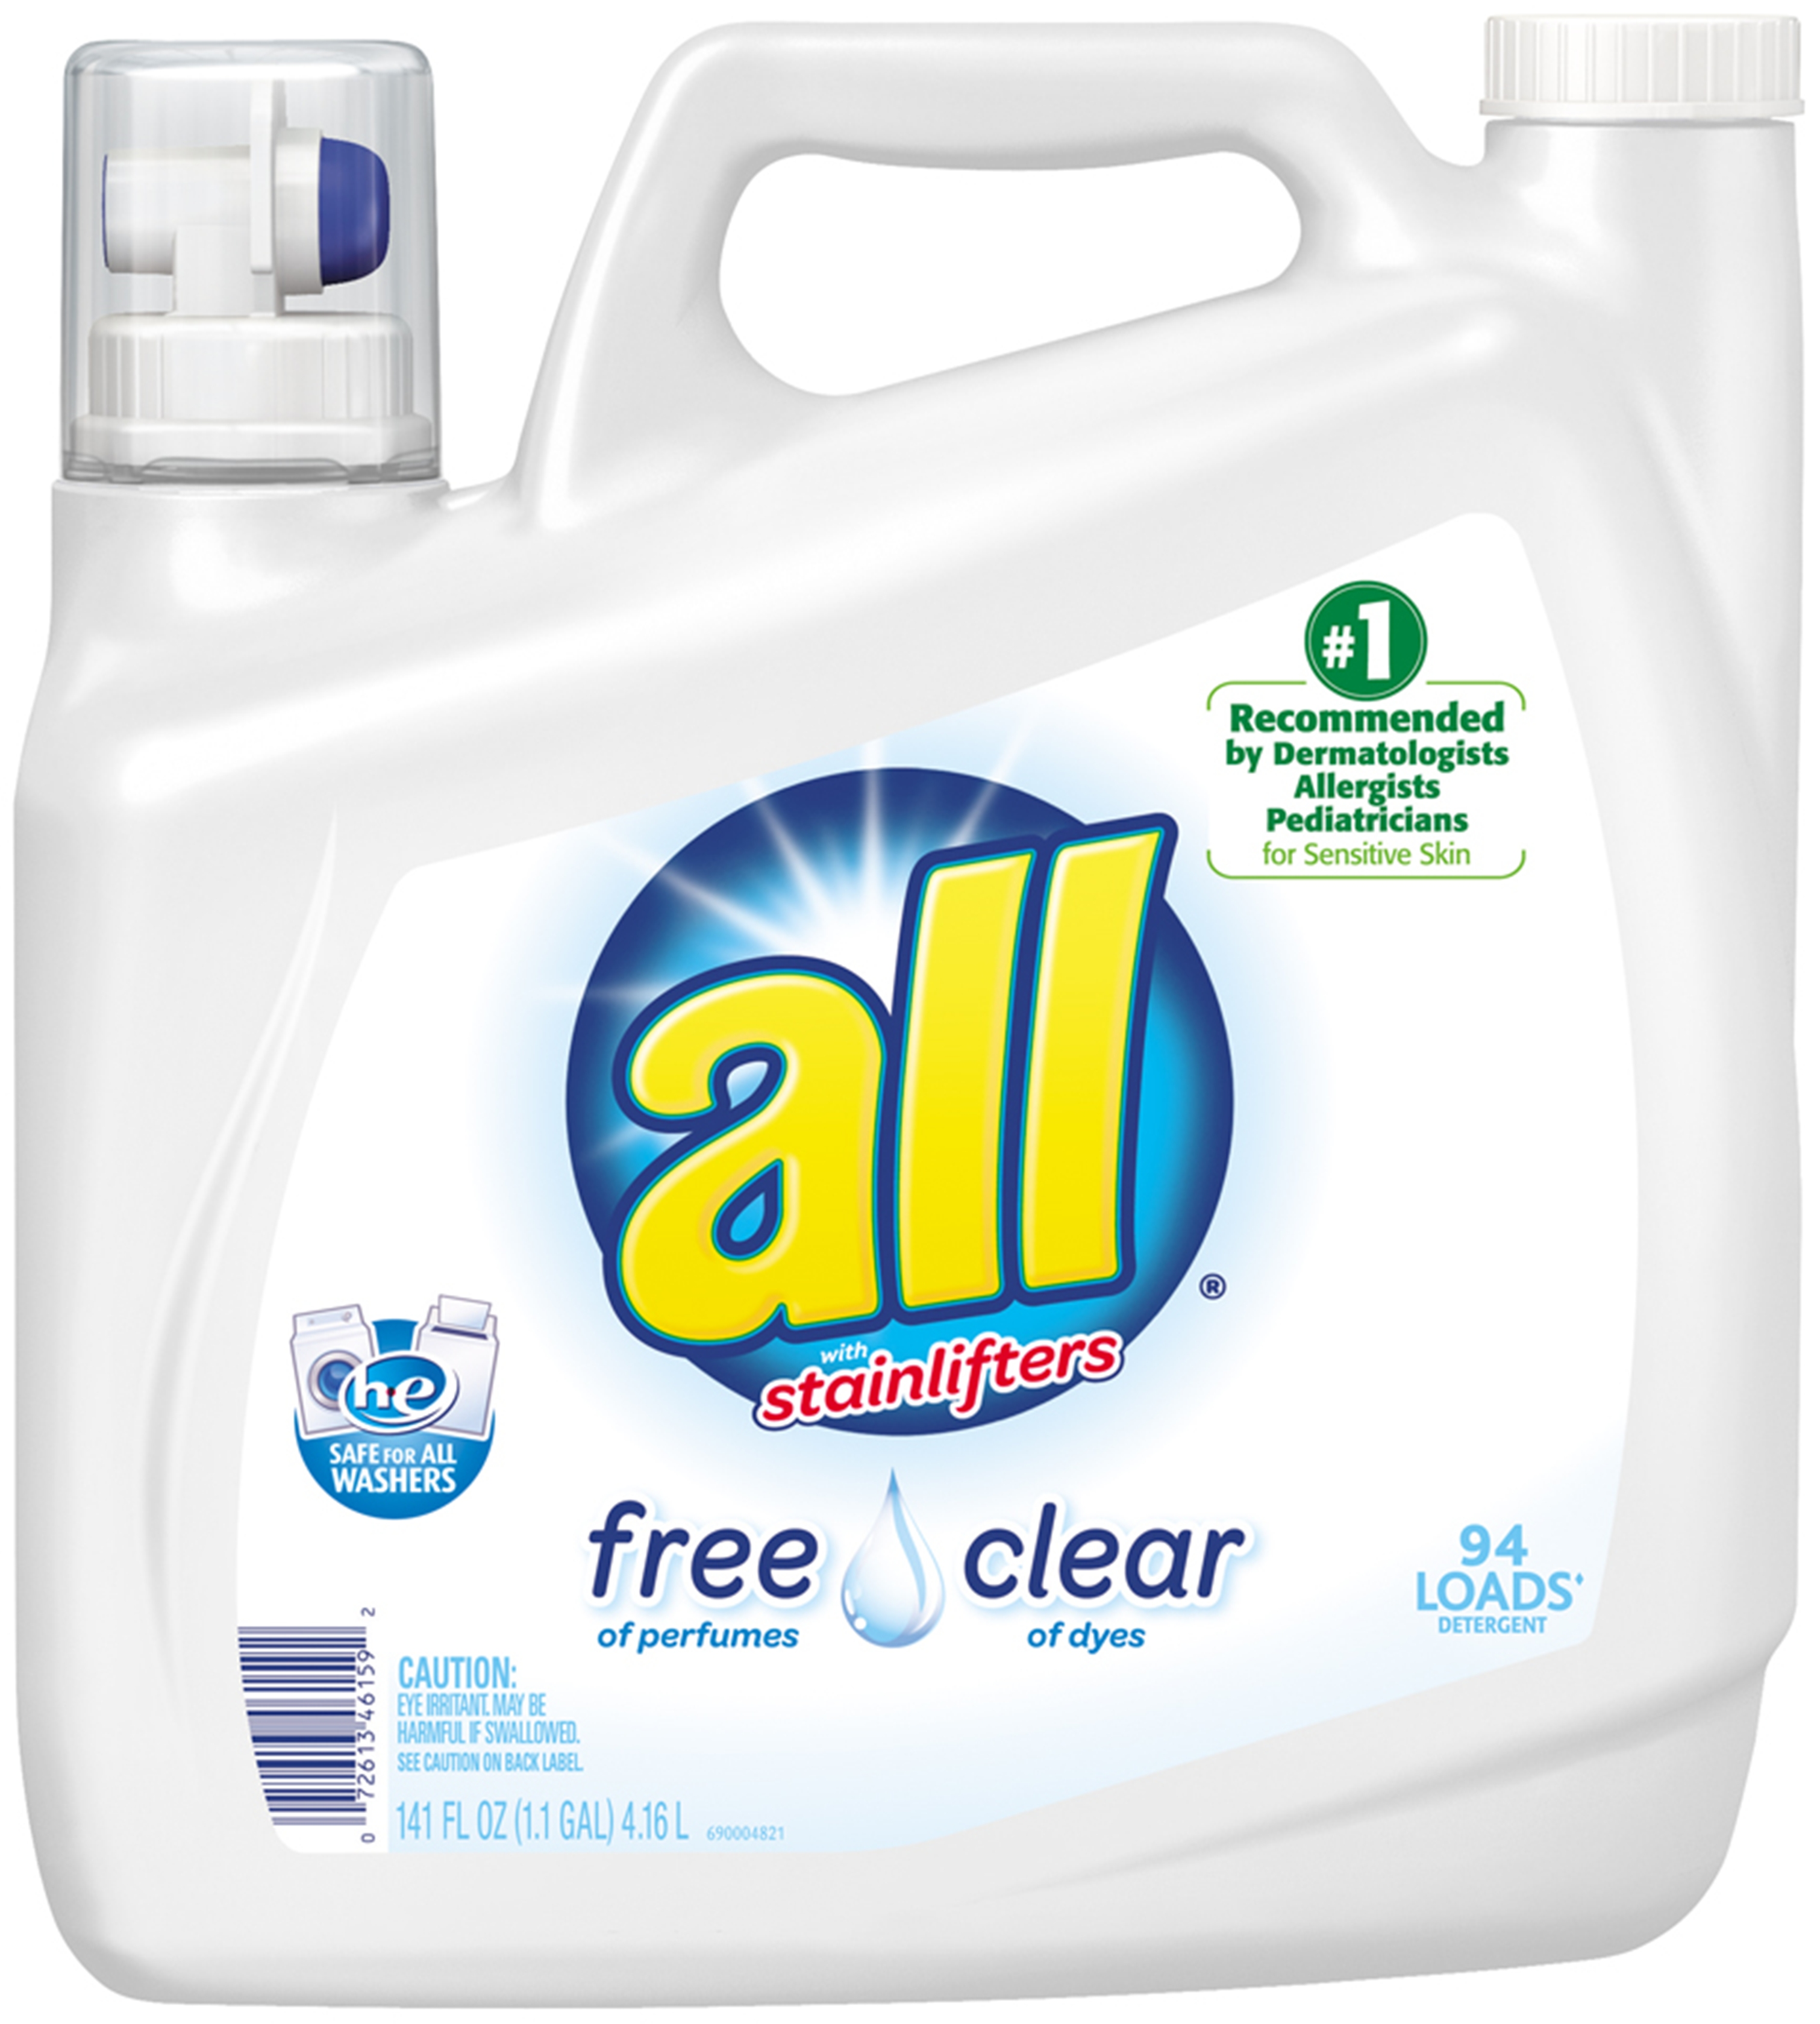 0072613461592 - ALL FREE CLEAR WITH STAINLIFTERS LIQUID LAUNDRY DETERGENT, 141 FL OZ/94 LOADS